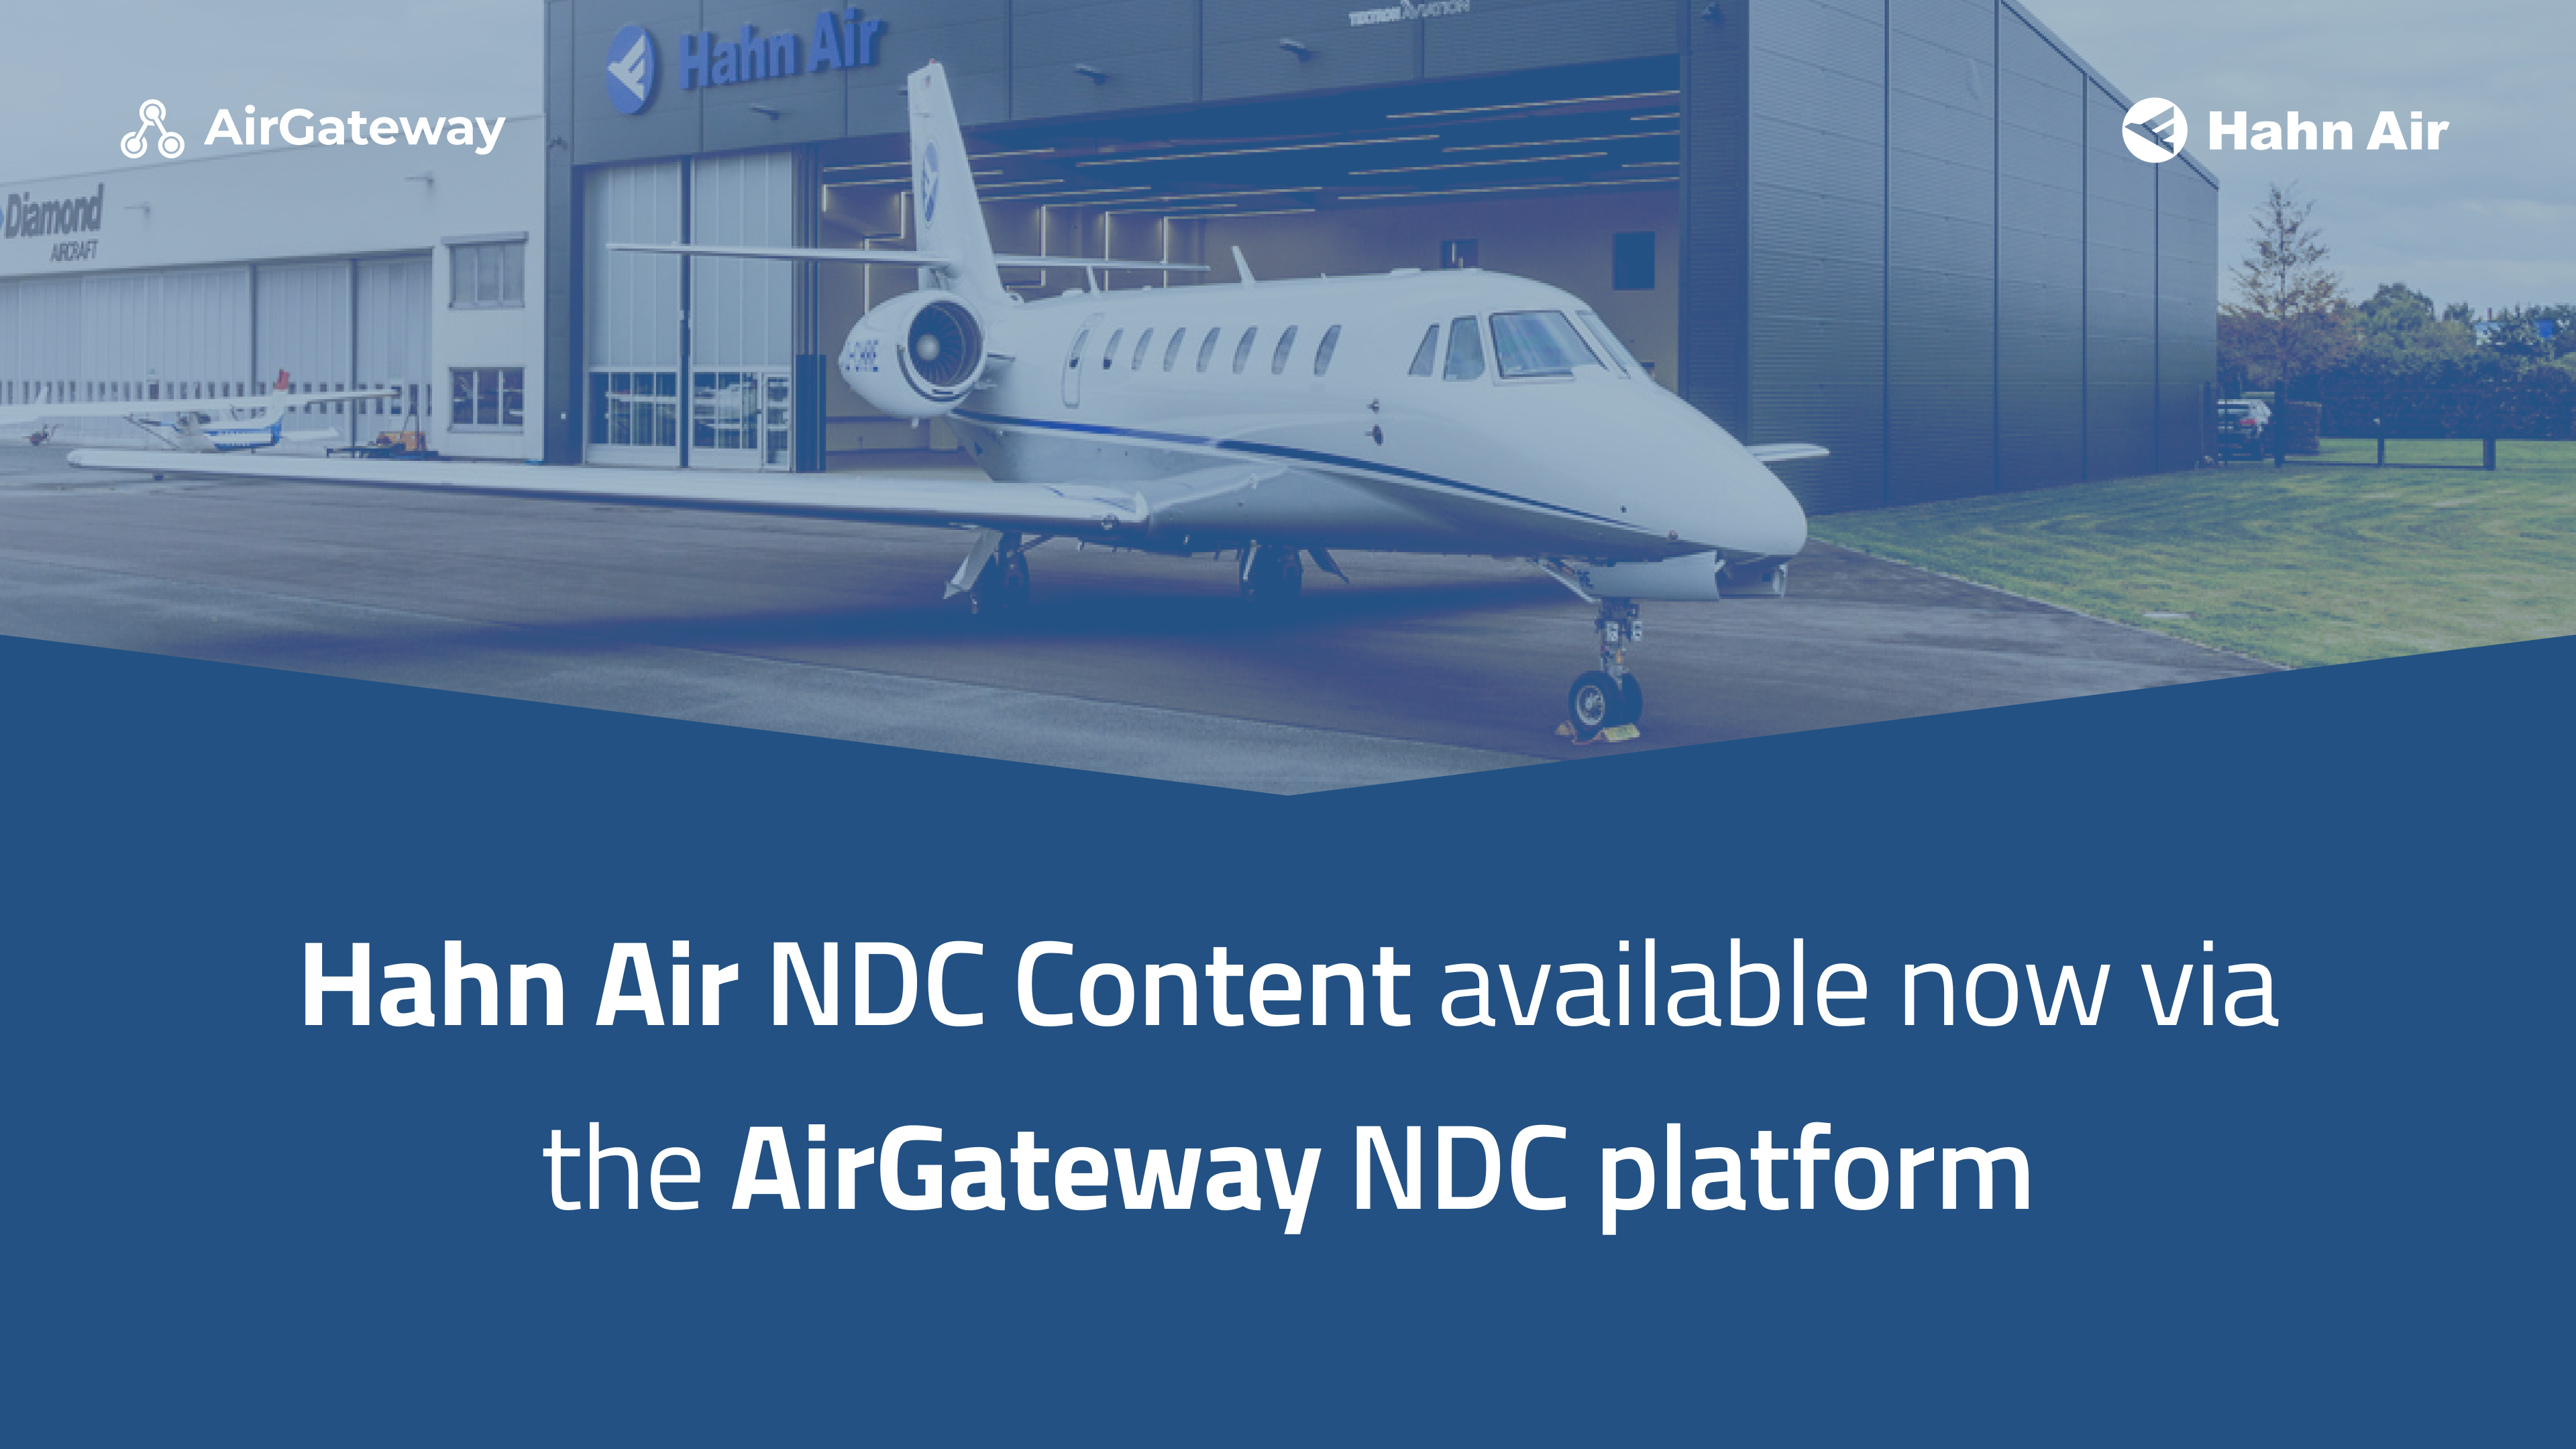 Hahn air NDC Content now available through NDC platform